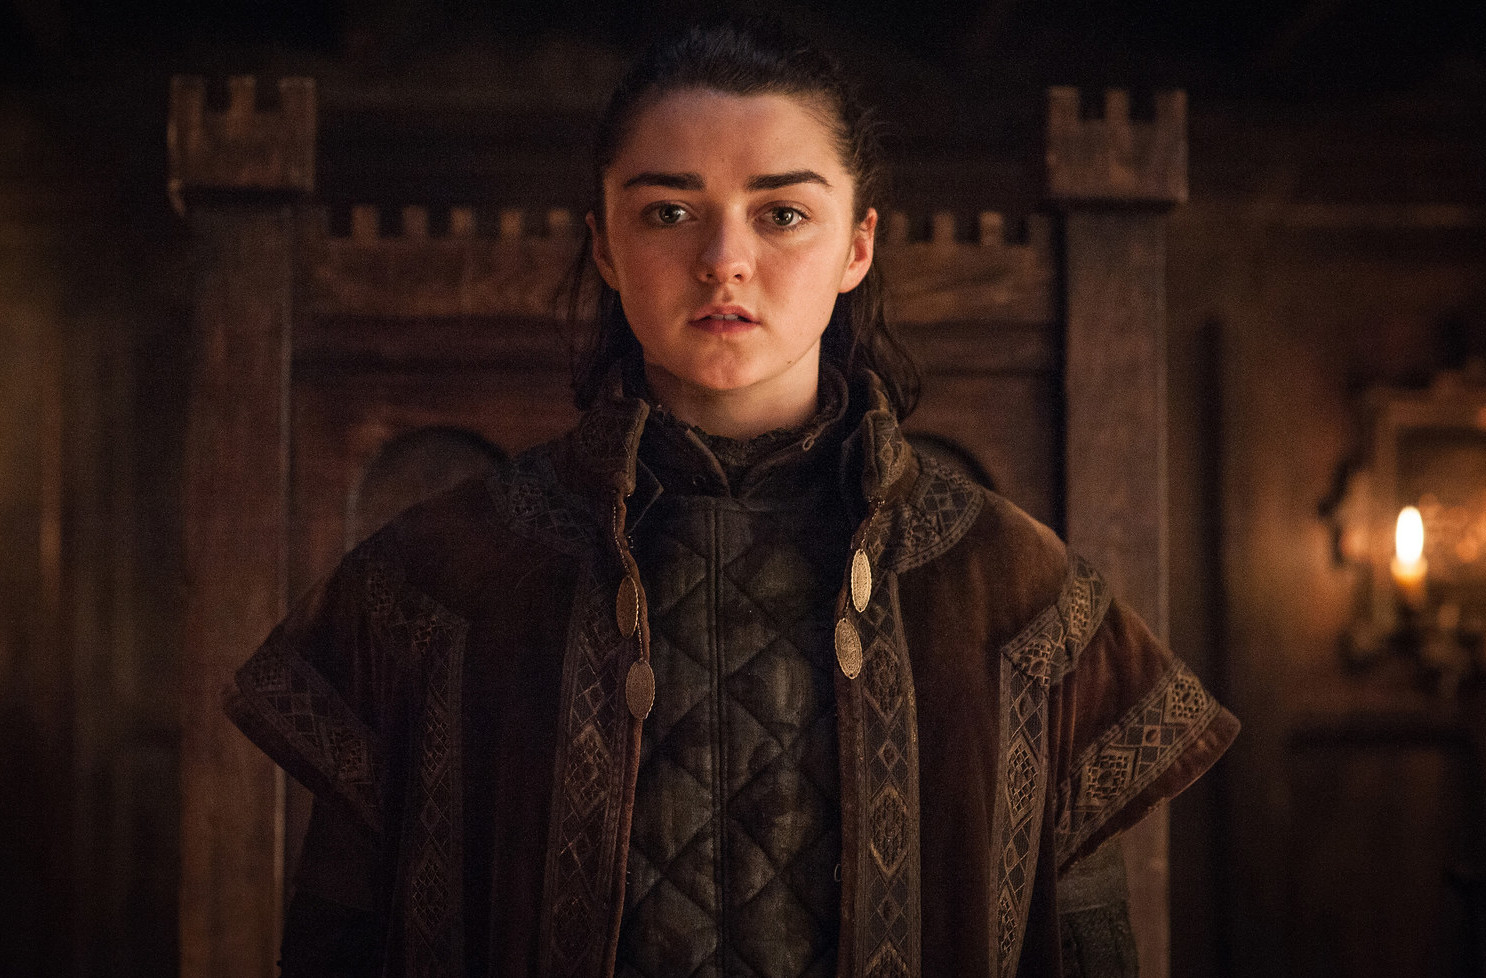 I'm just gonna come right out and say it: If there's one character that should survive Game of Thrones in the end it's Arya Stark.